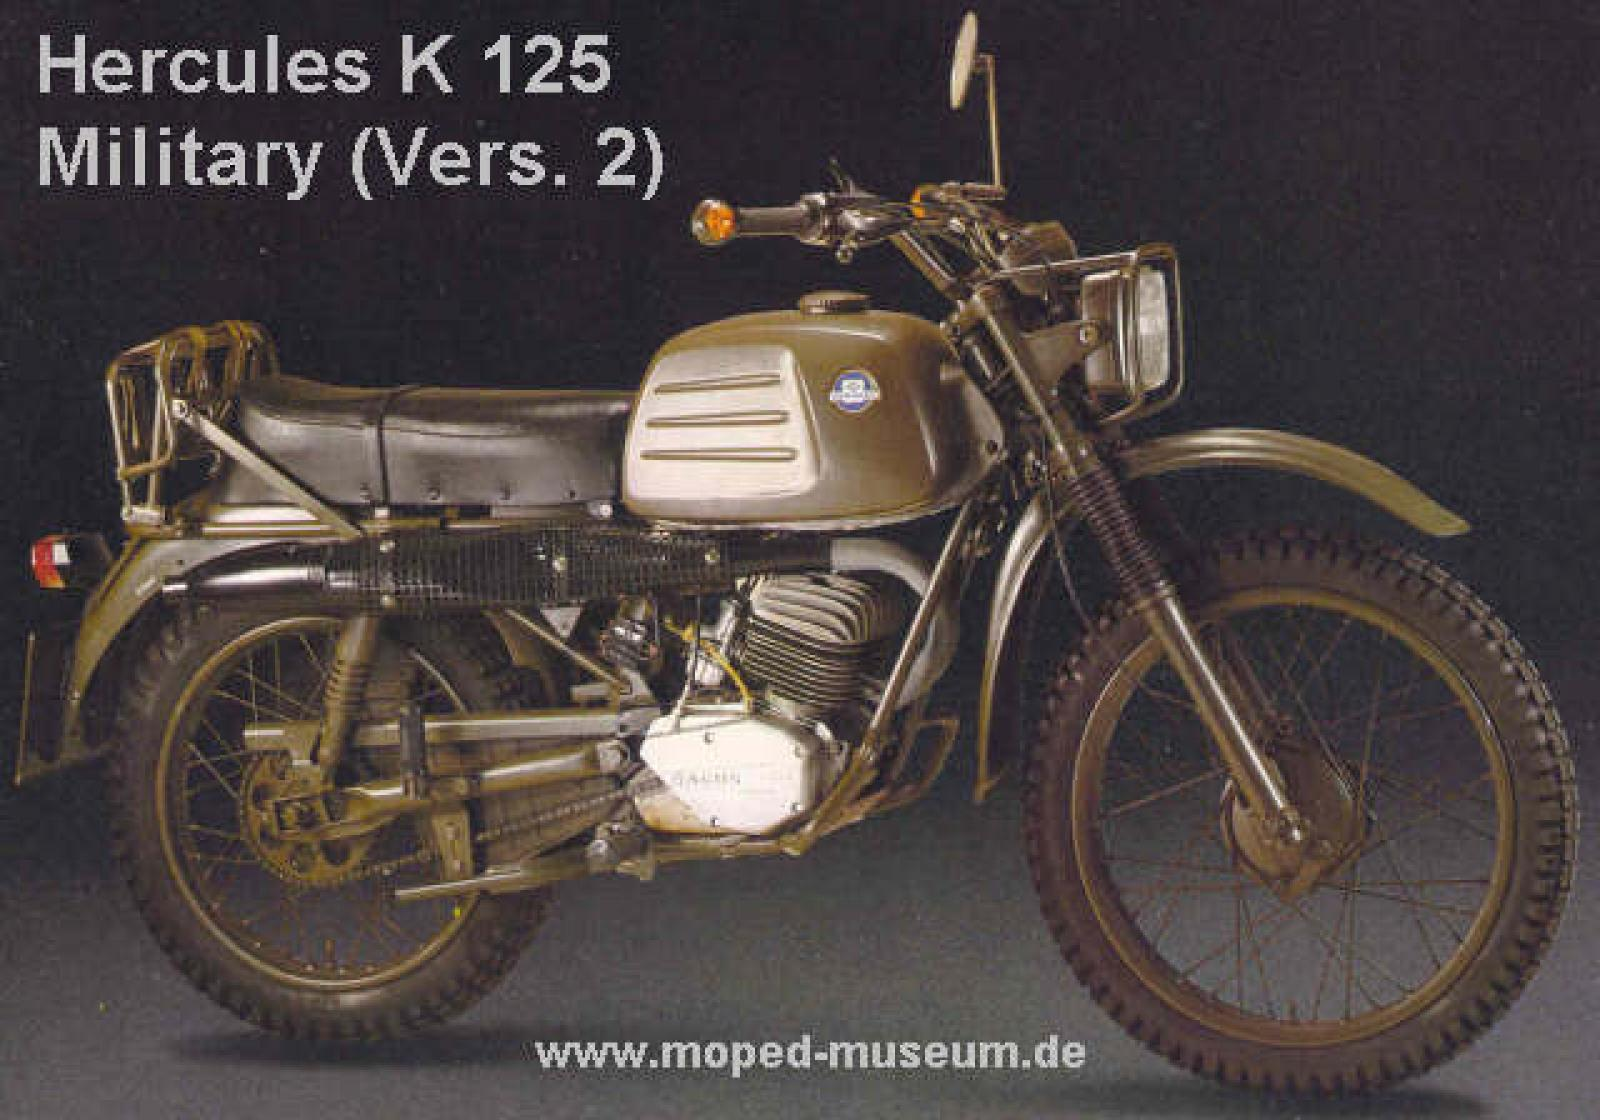 Hercules K 125 Military 1988 images #74633